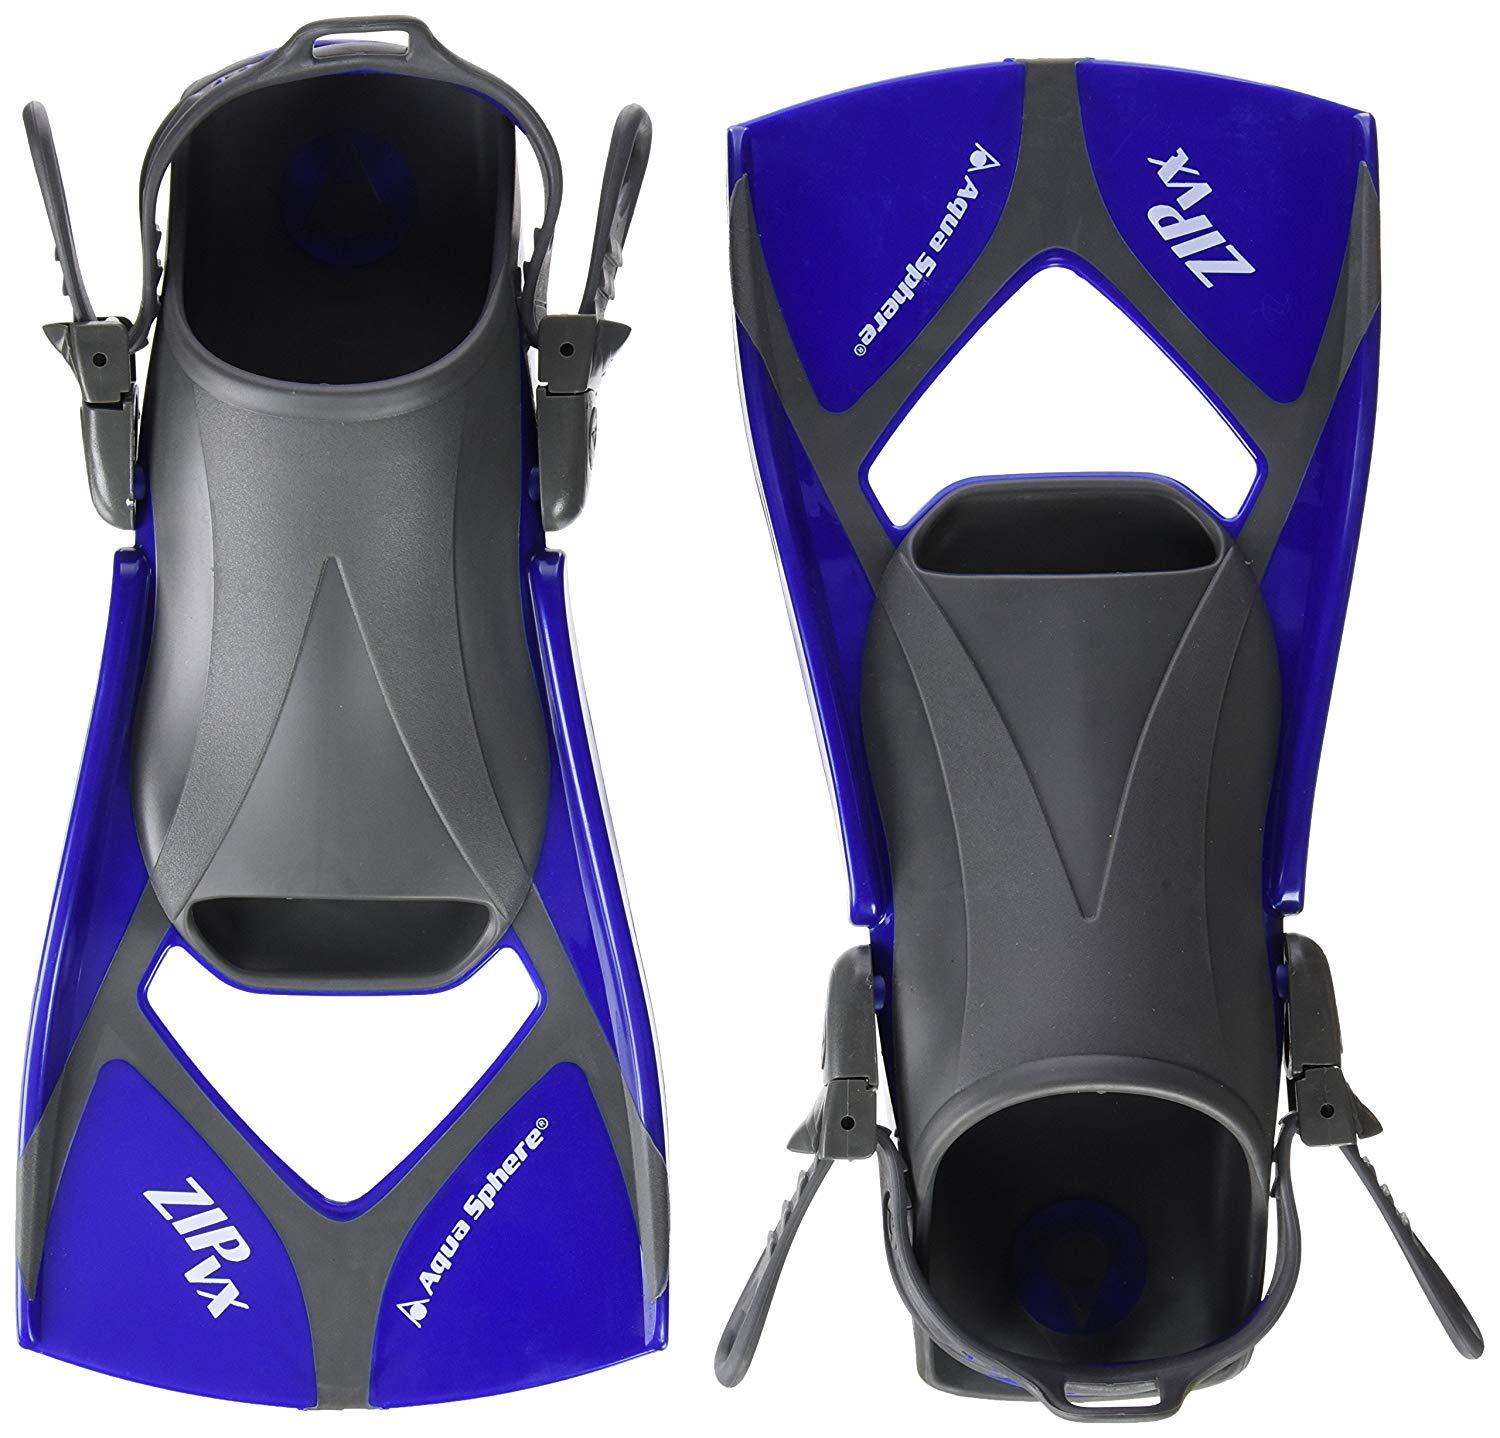 Zip VX Fitness Swim Fins, Blue/Grey, Small, Easy-to-adjust buckles for a custom fit By Aqua Sphere